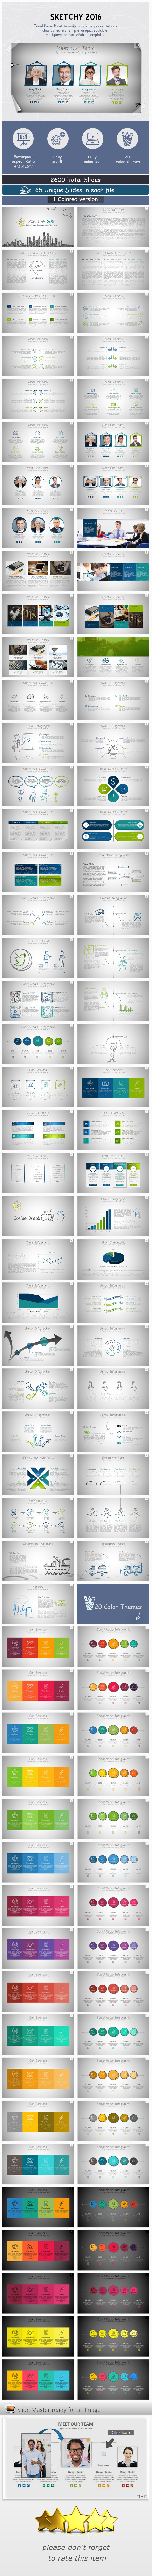 Sketchy 2016 Powerpoint presentation Template - Business PowerPoint Templates